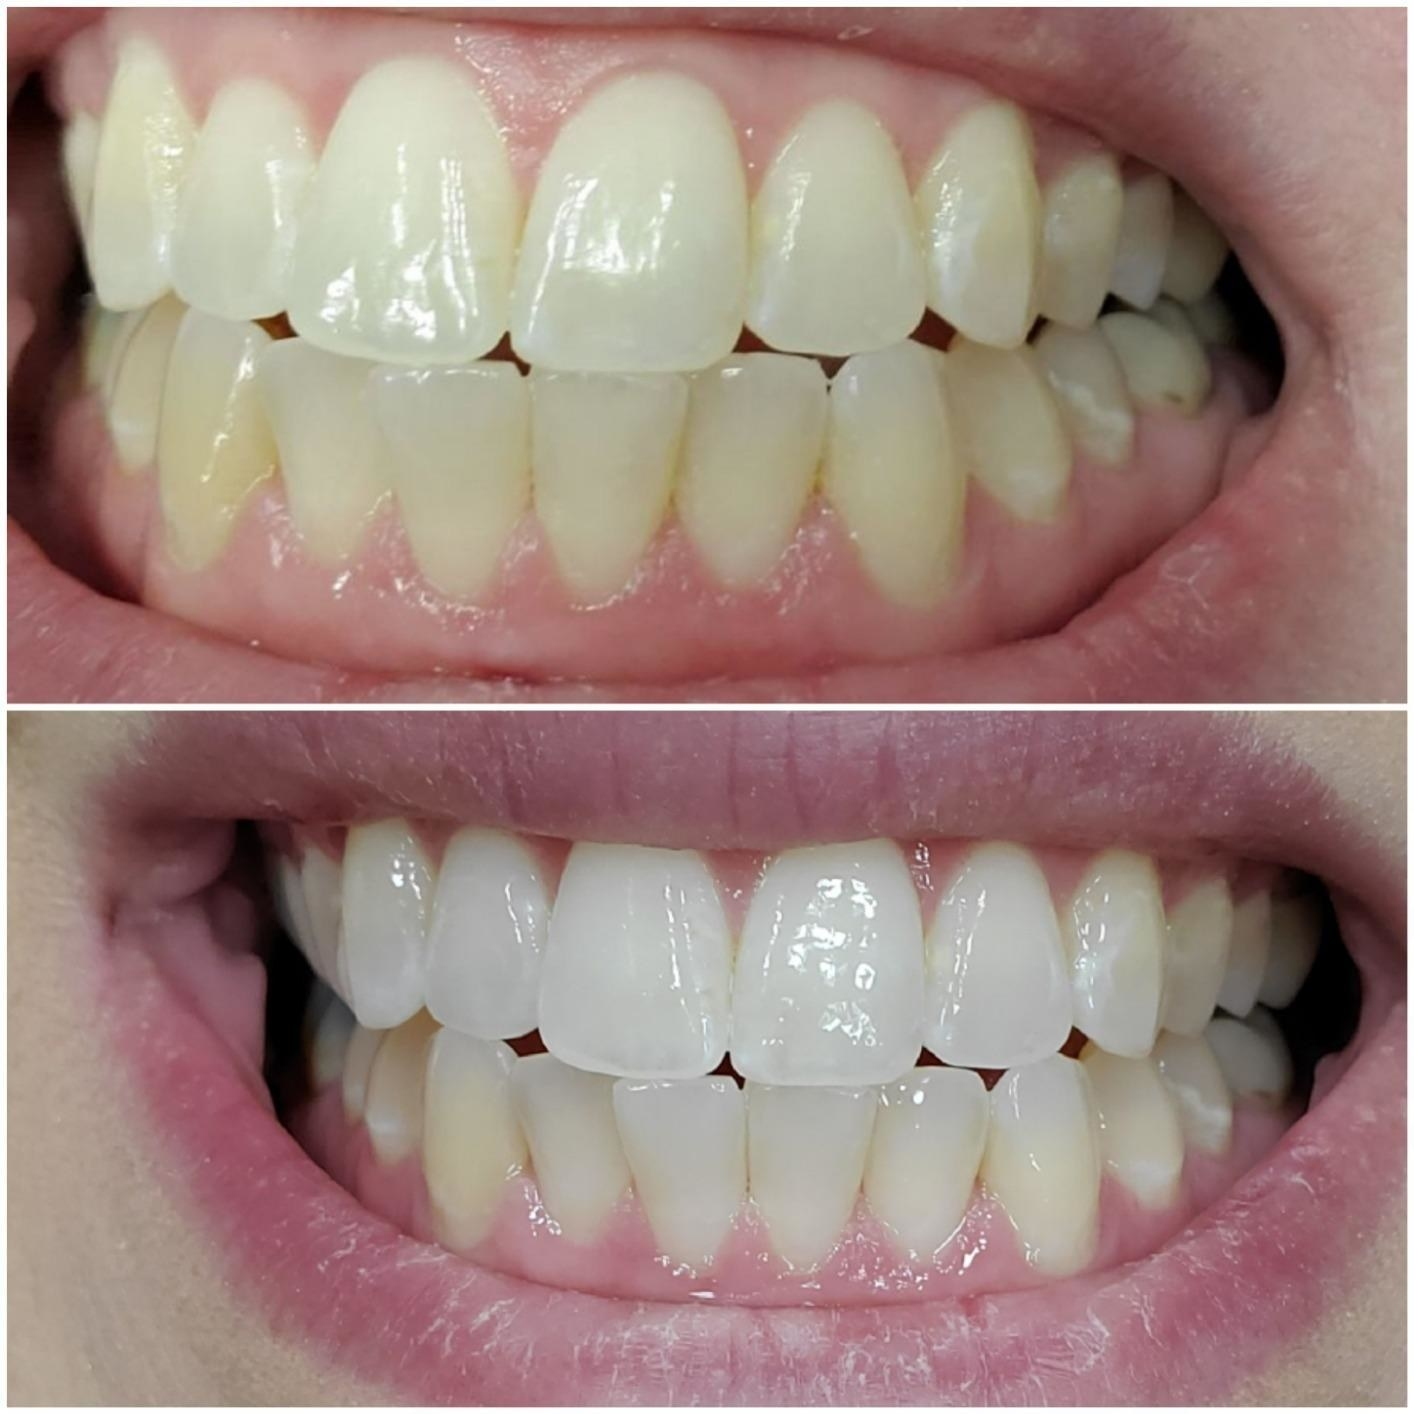 A before/after of a reviewer's teethL yellower on top, and whiter on the bottom